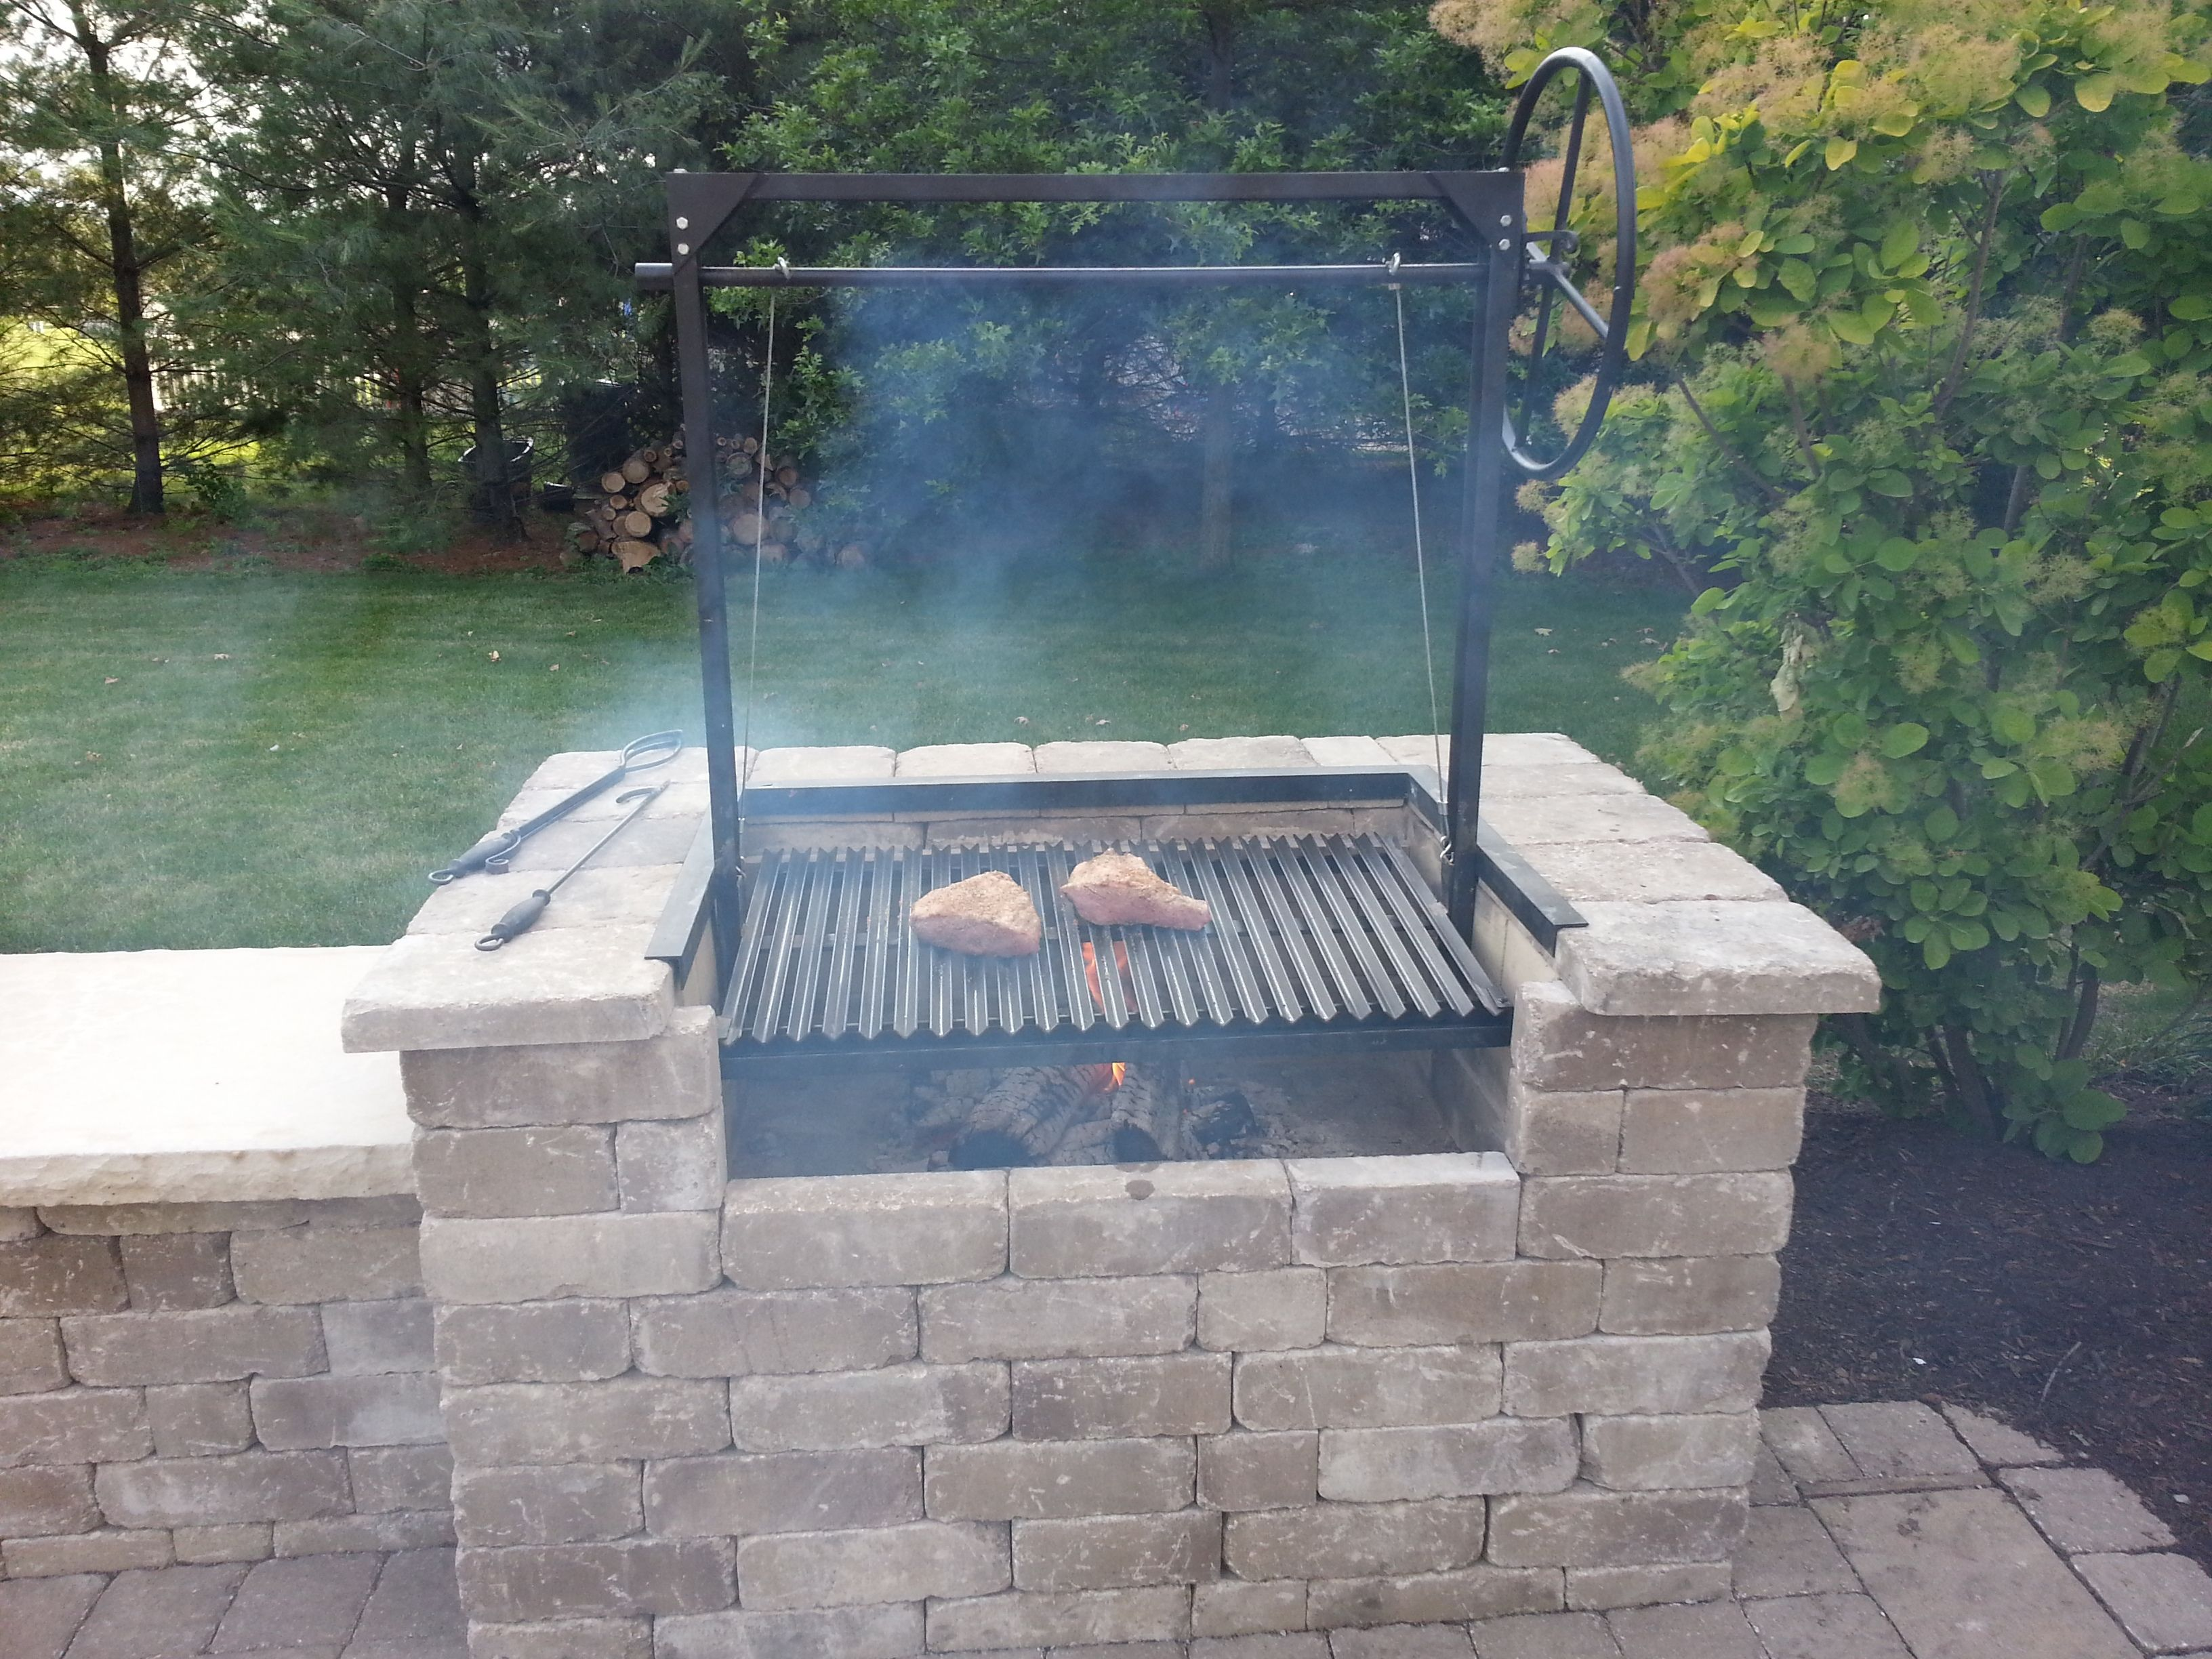 550d77c1d94480d50a910649036f4254 Top Result 50 Awesome Cost Of Outdoor Fireplace Picture 2018 Zat3